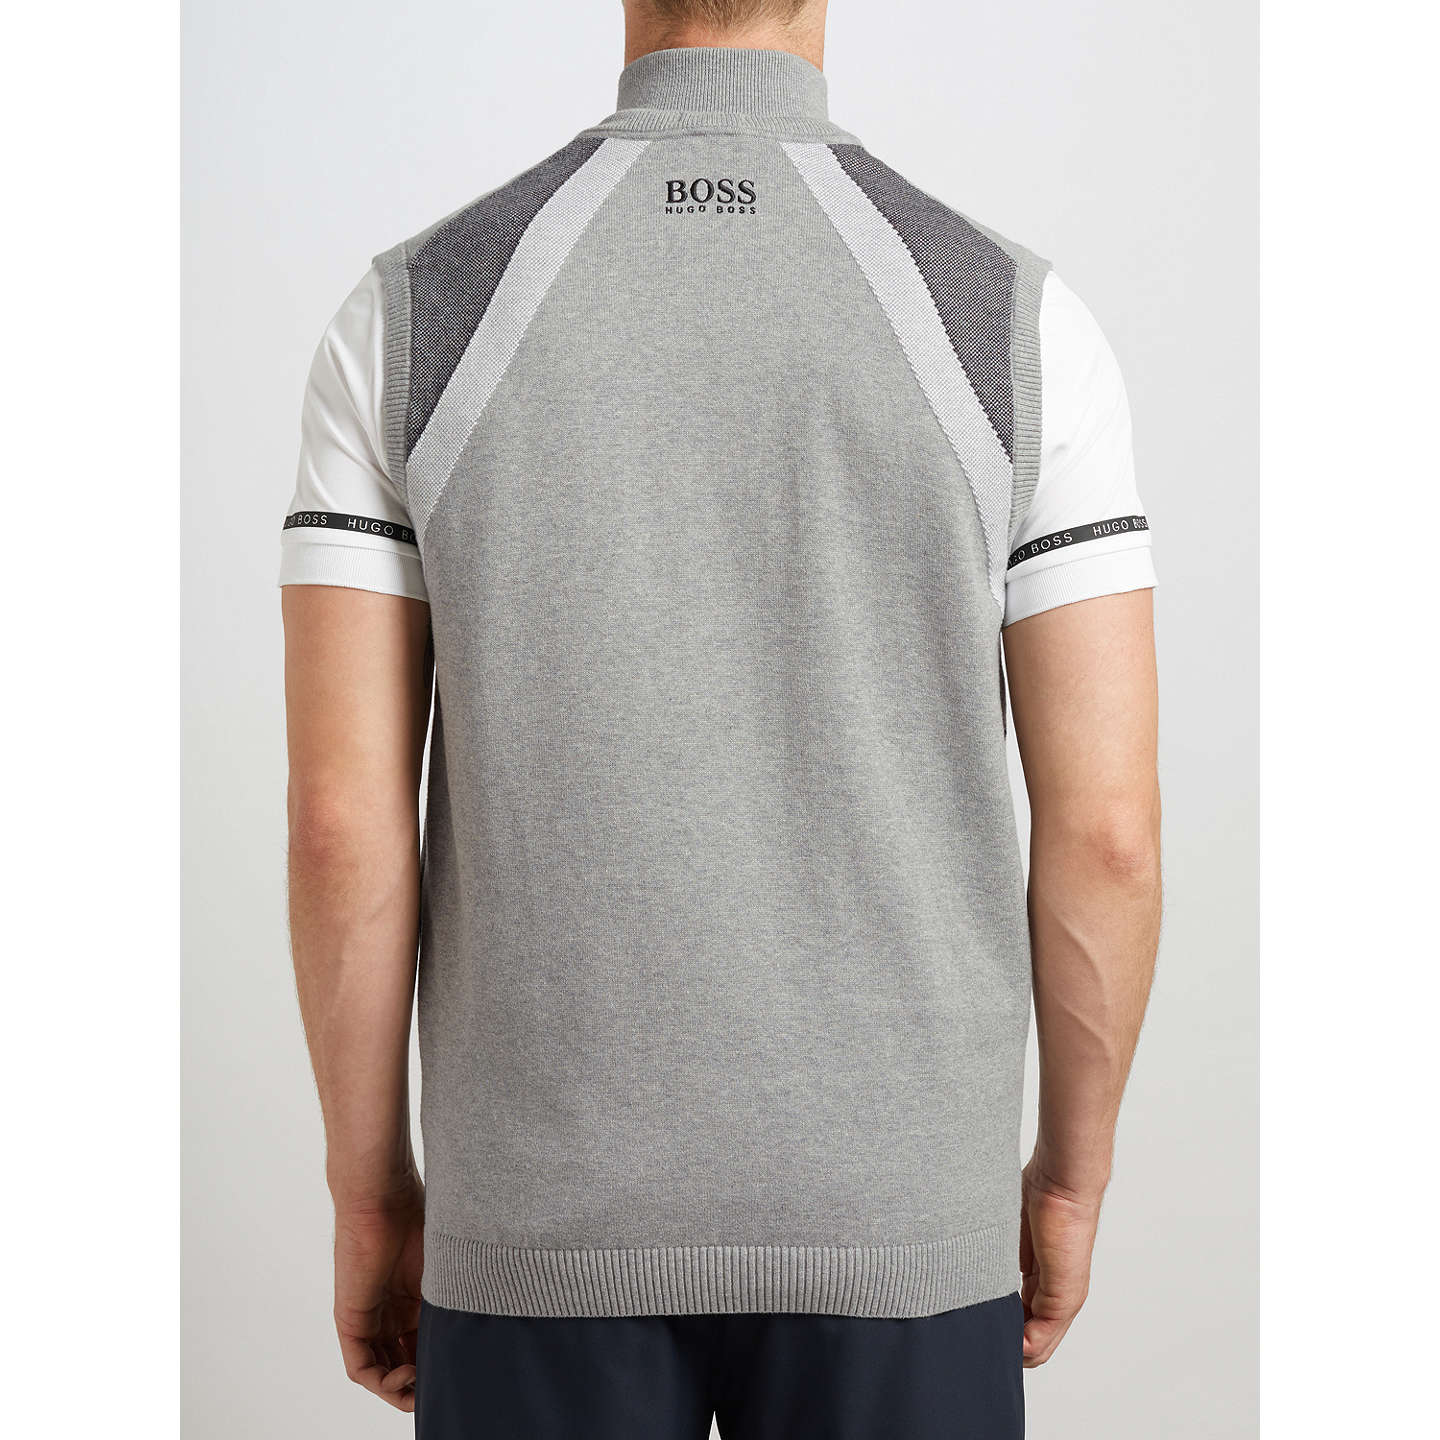 BuyBOSS Green Pro Golf Zagi Pro Knitted Sleeveless Vest, Light Pastel Grey, S Online at johnlewis.com